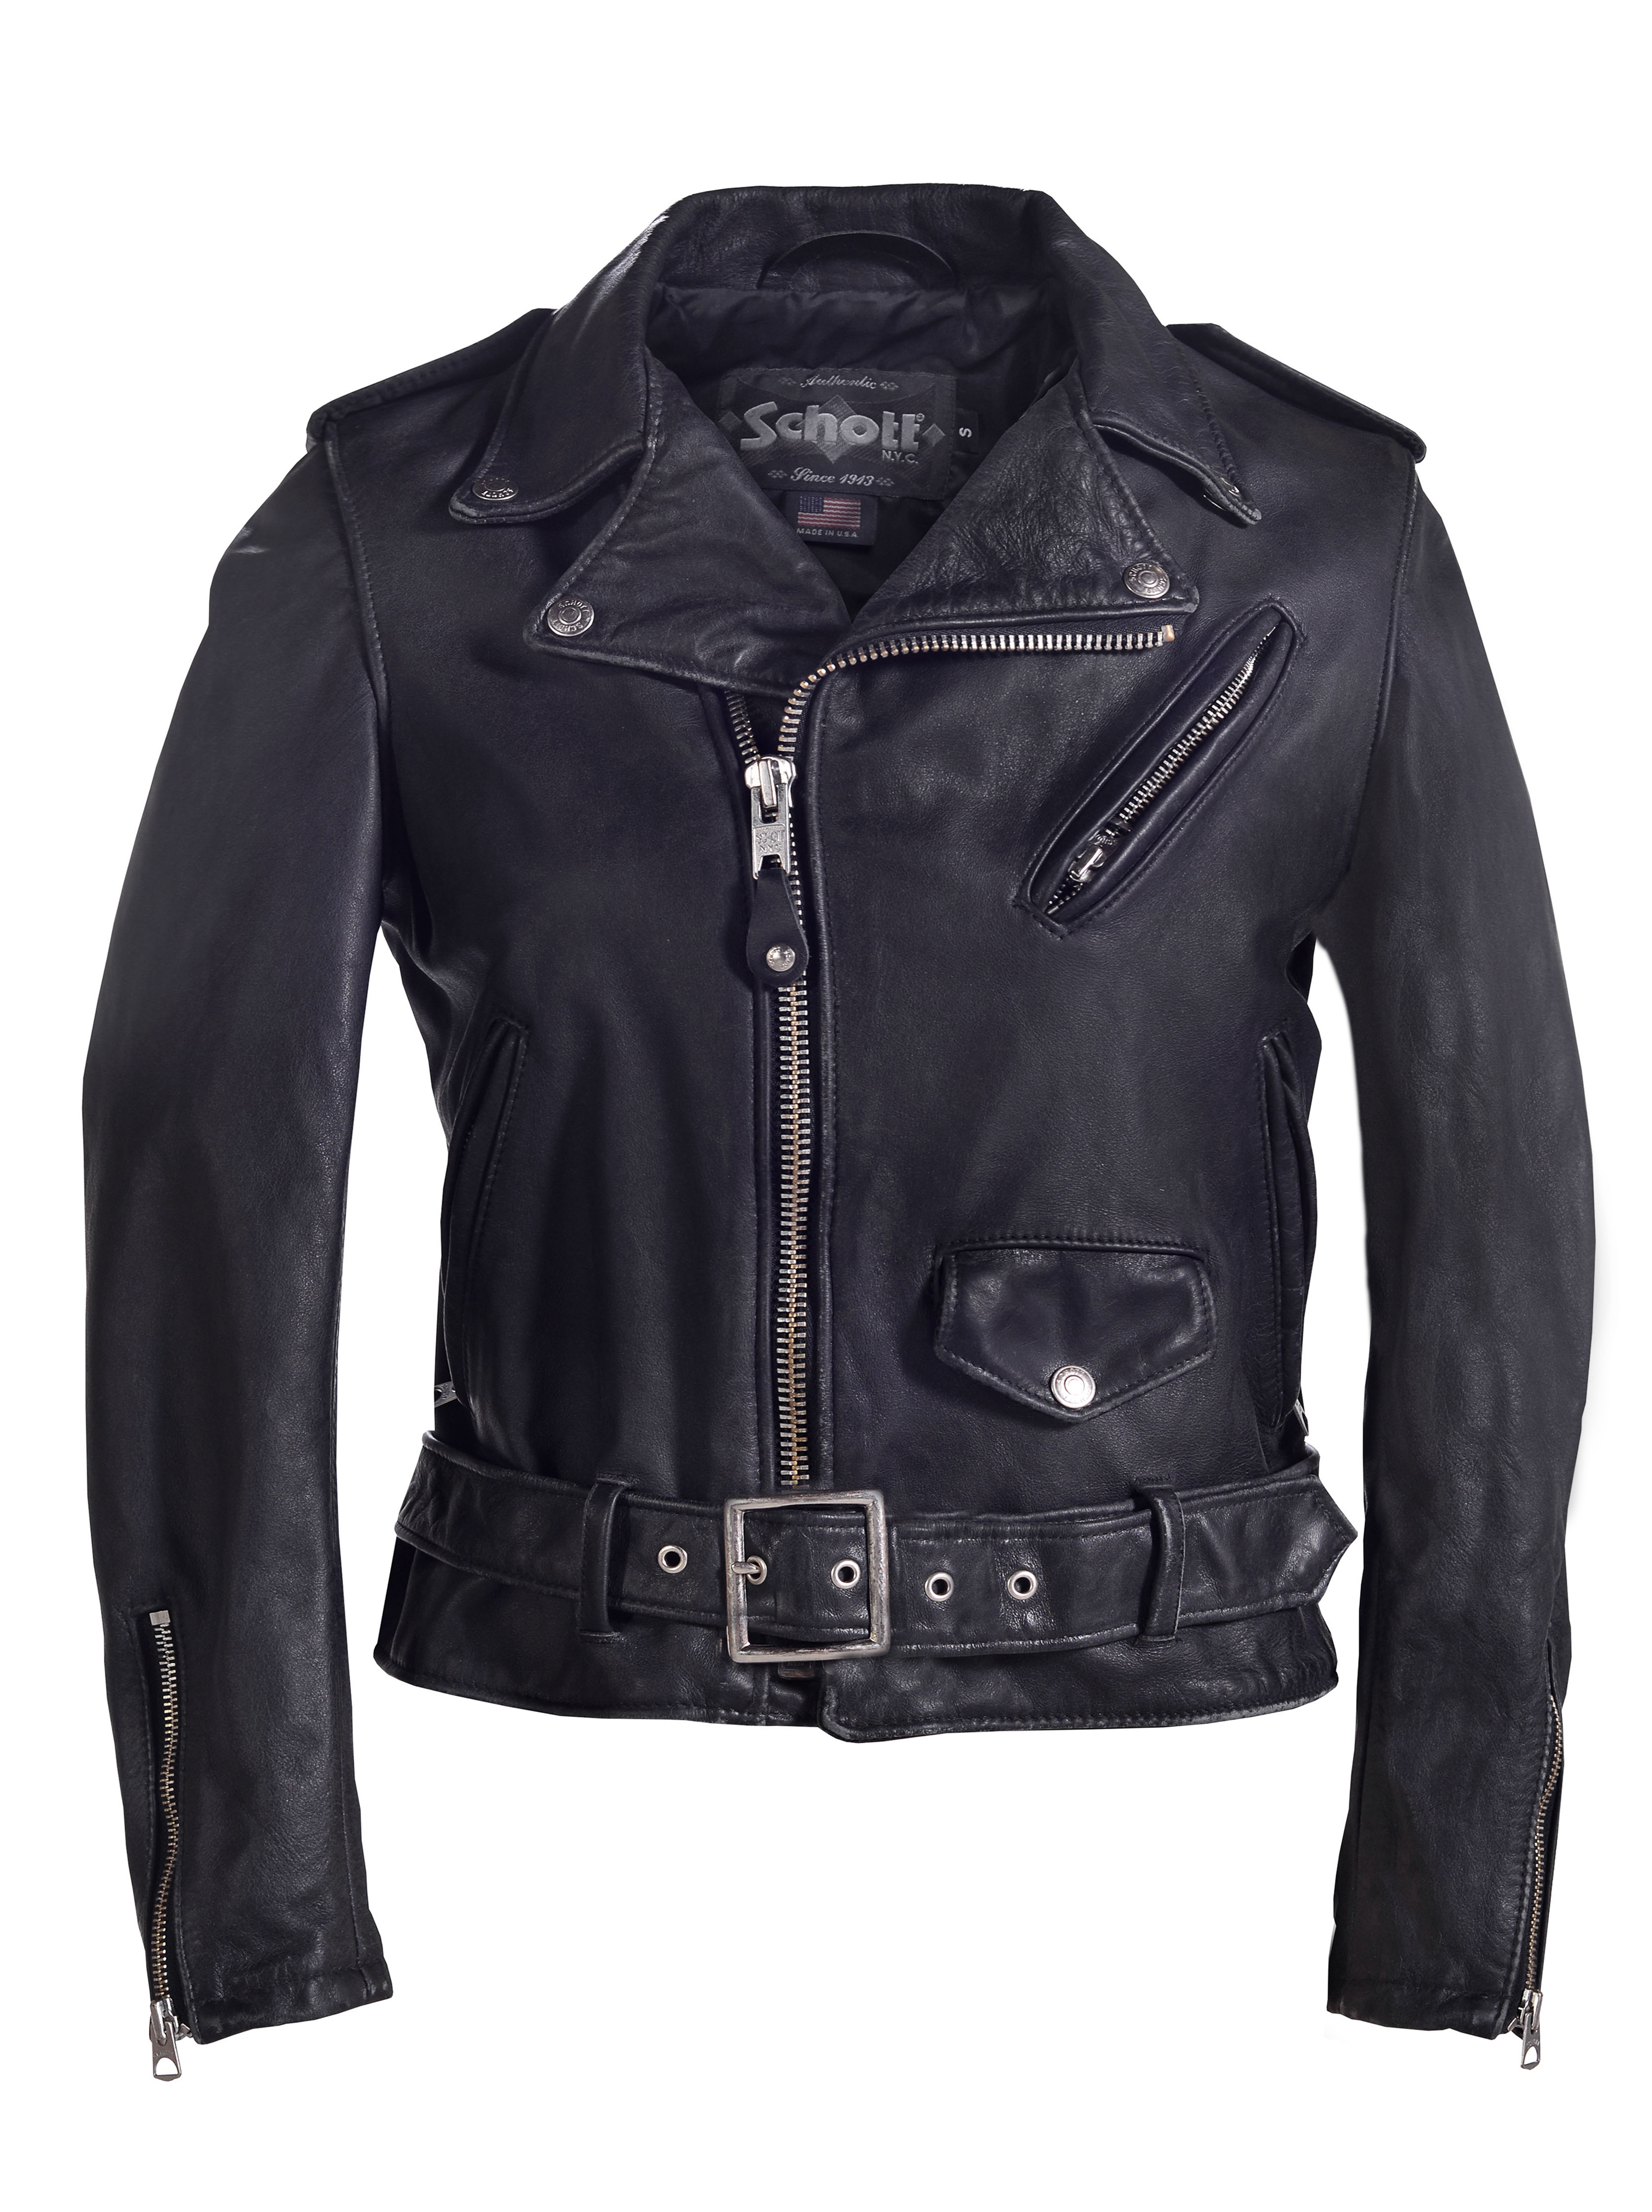 Schott N.Y.C. 626VNW Women's Vintaged Cowhide Motorcycle Jacket